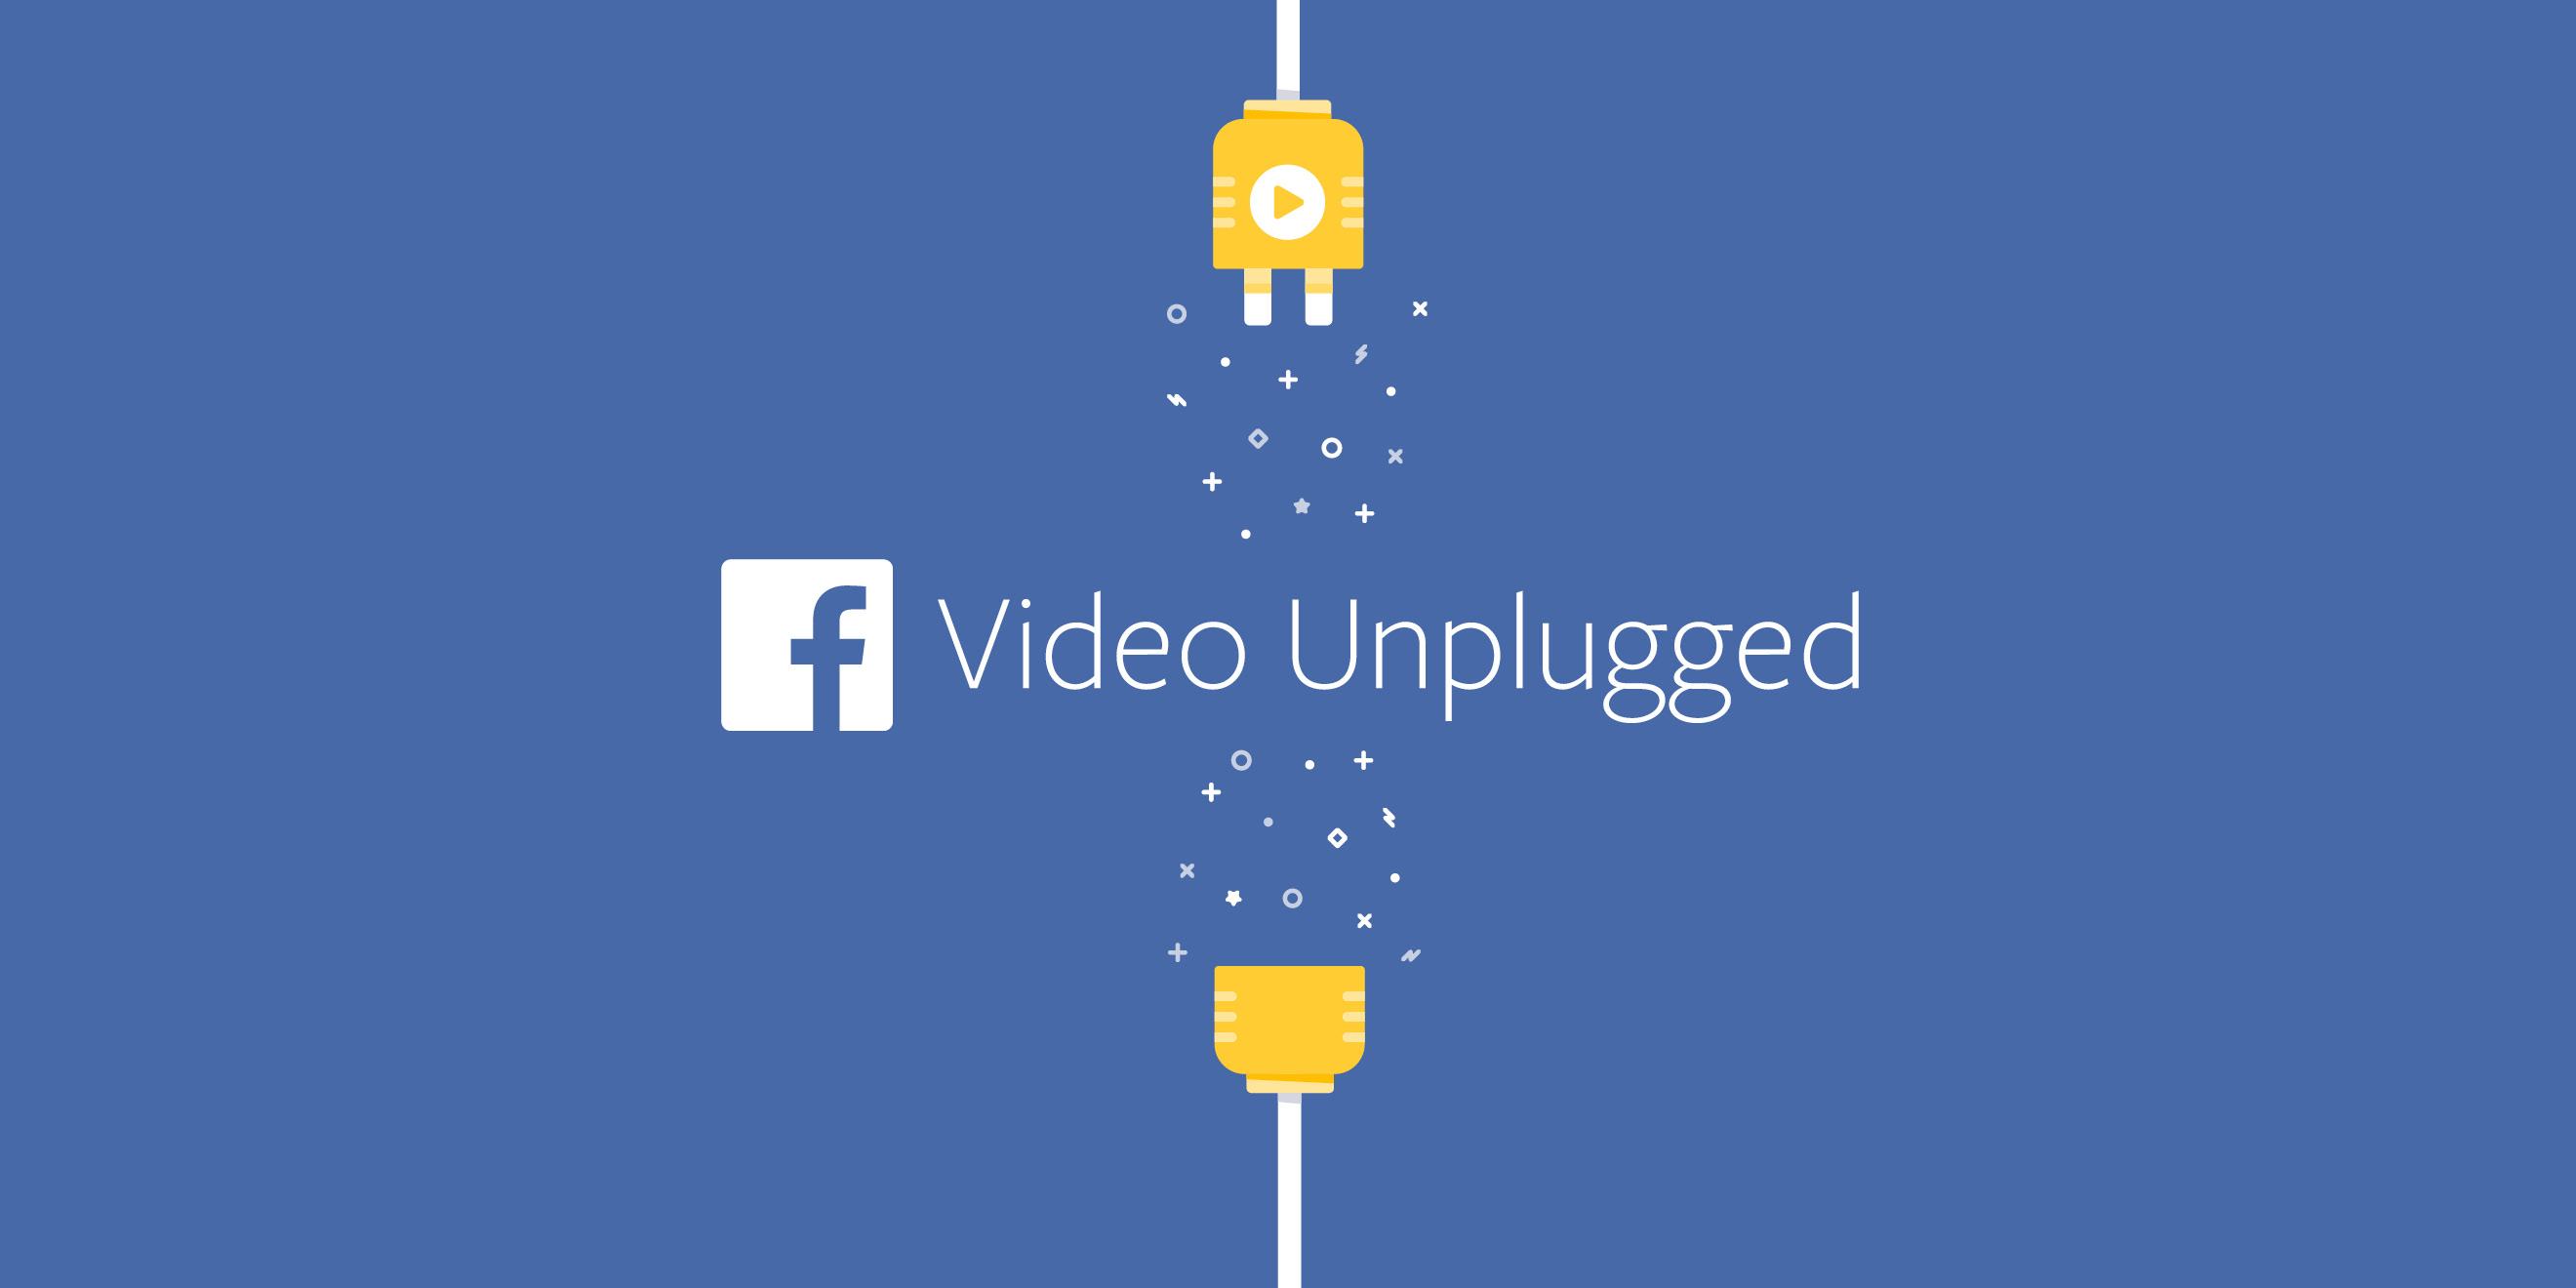 Facebook Video Unplugged event branding